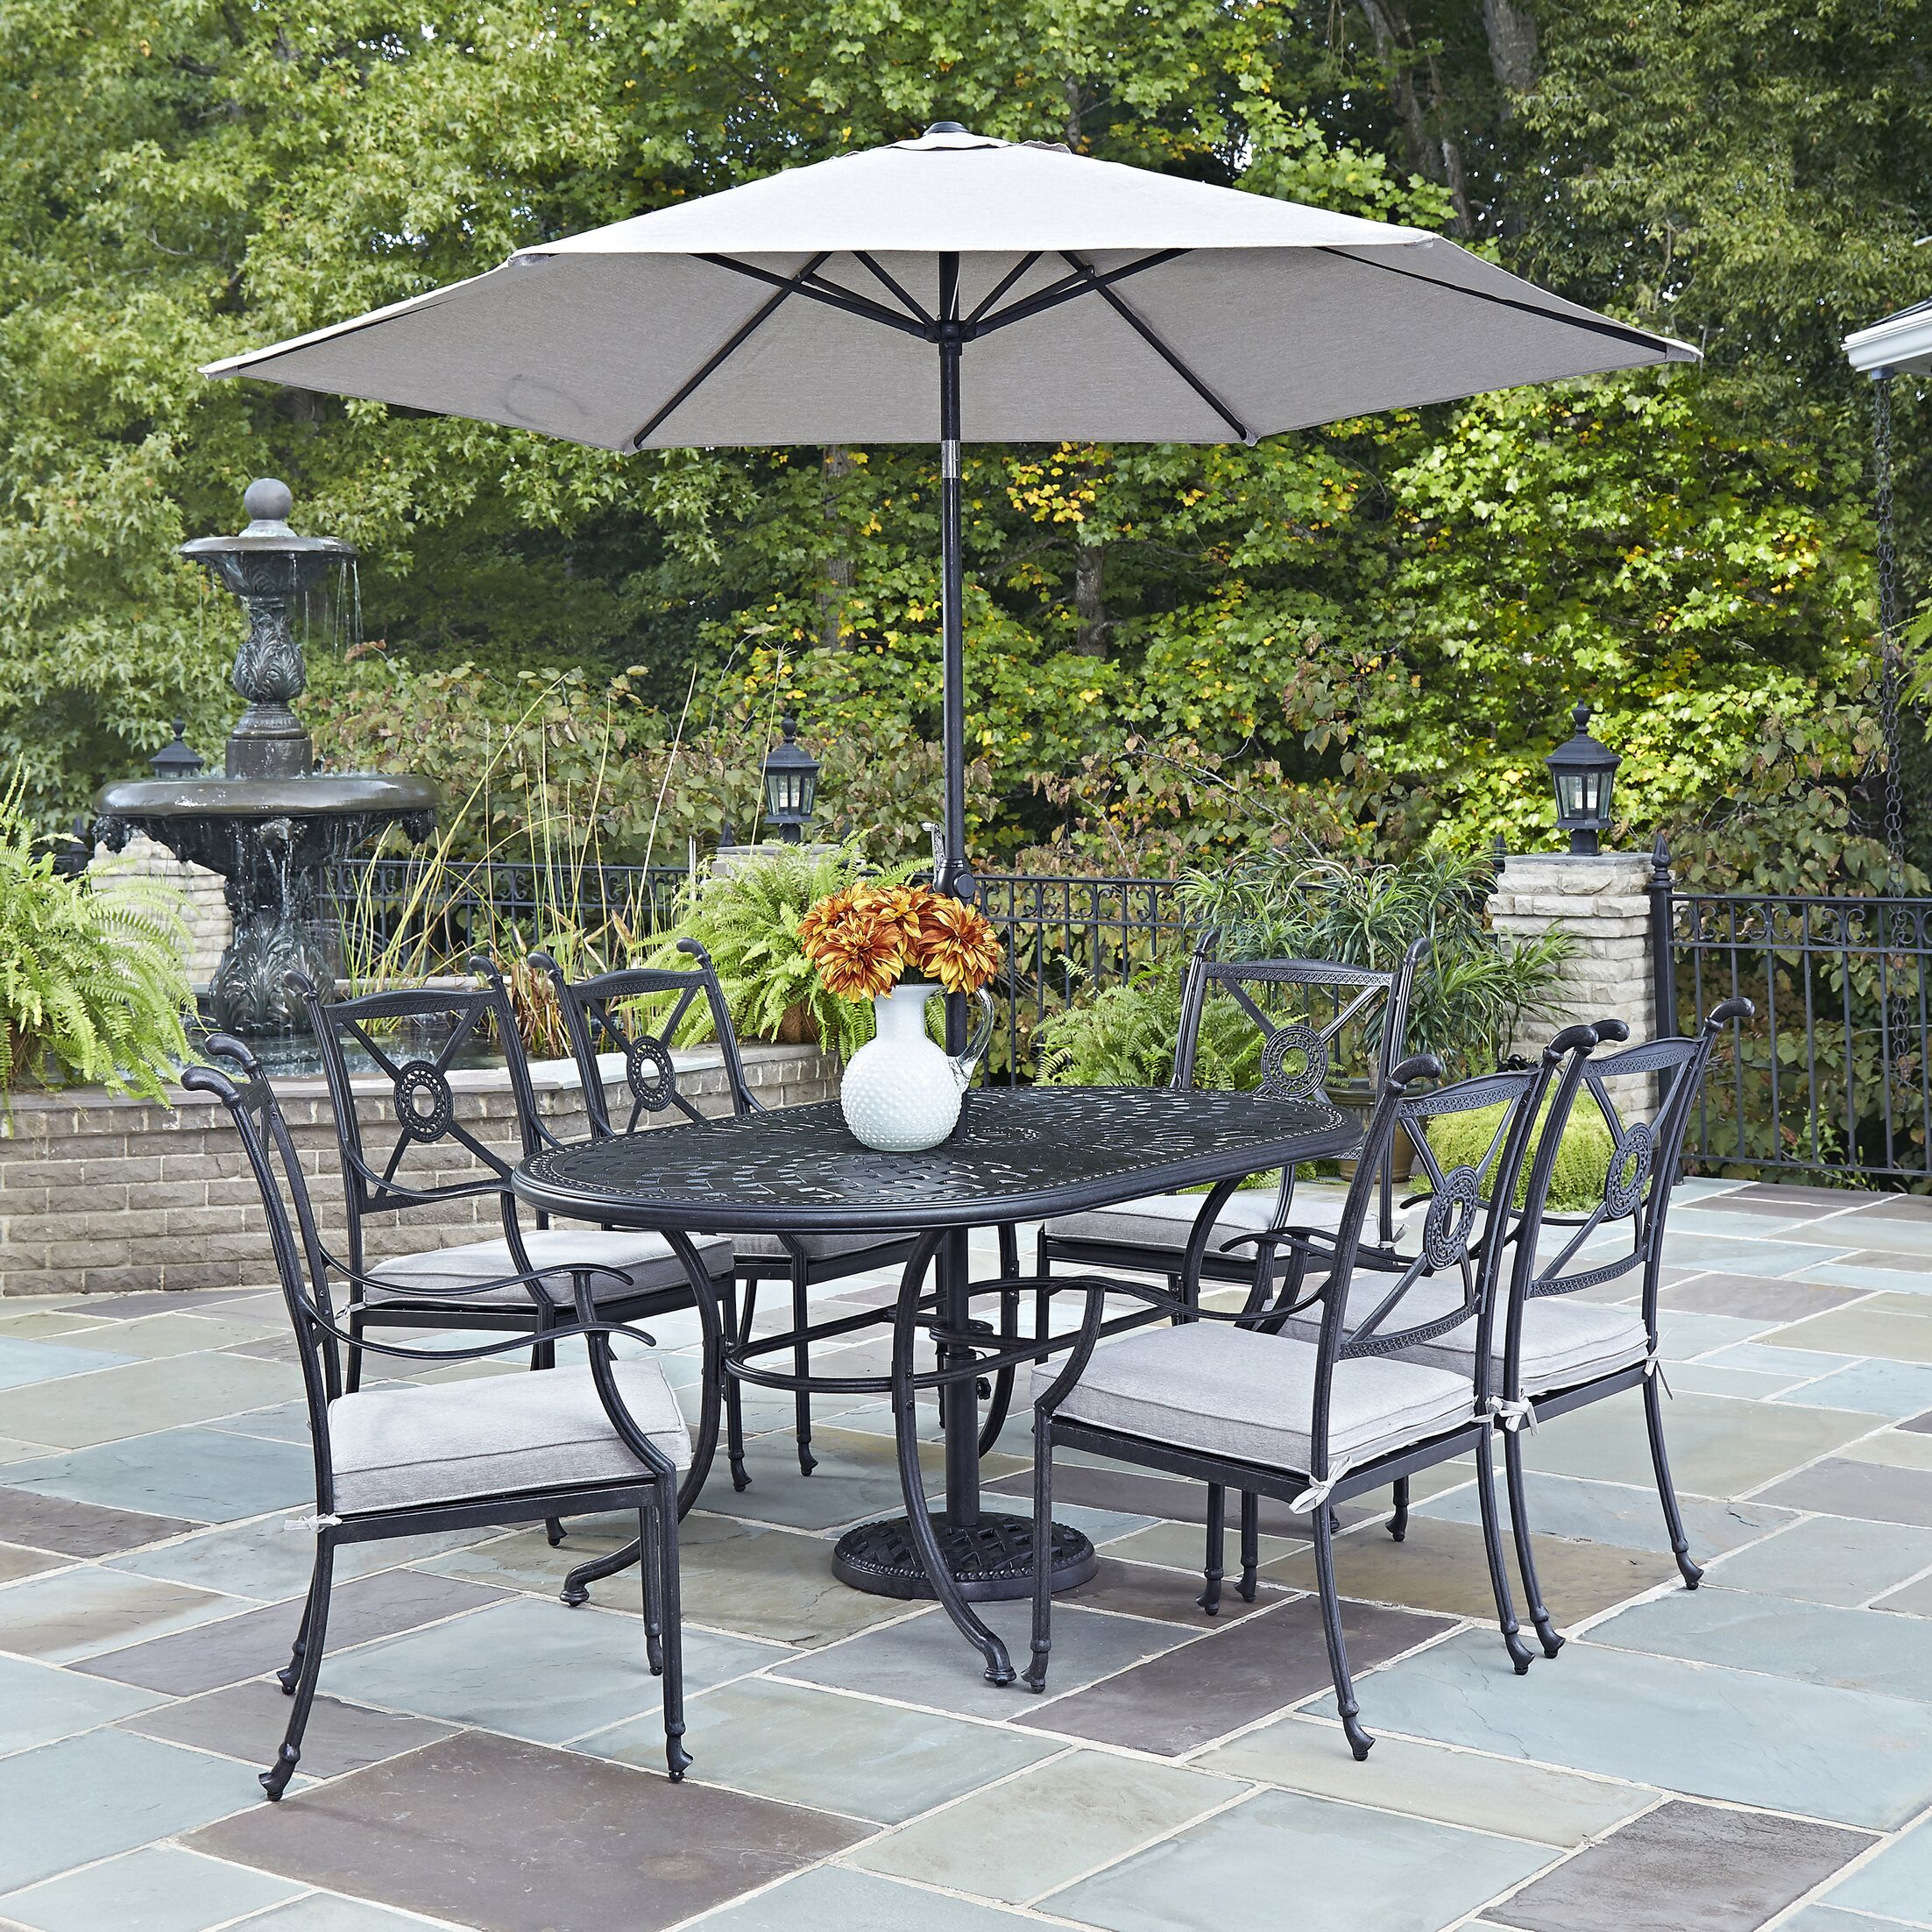 Lansdale 9 Piece Dining Set with Cushions